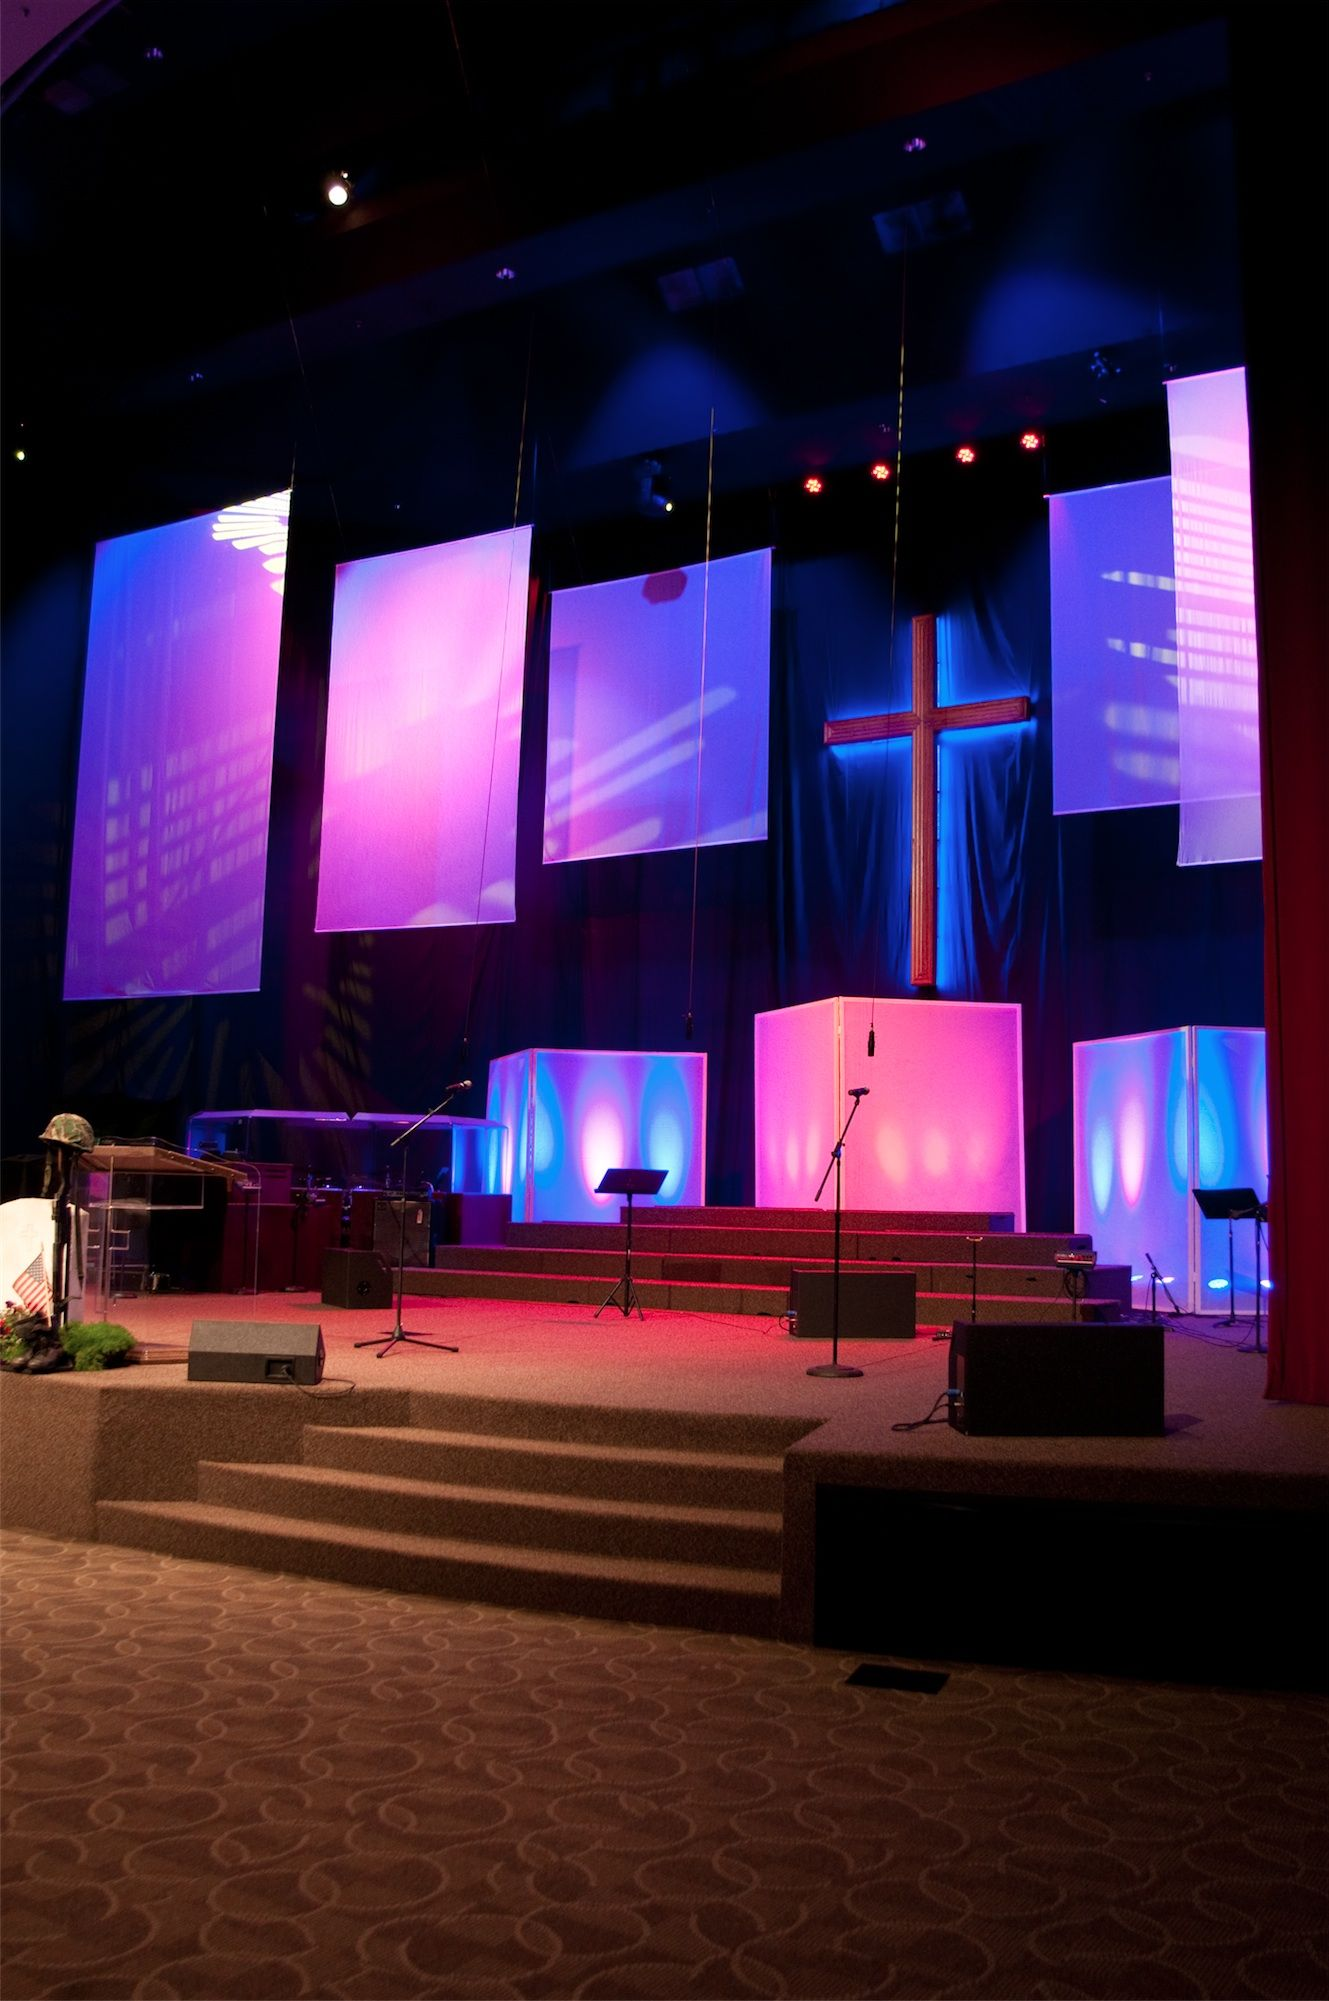 17 best images about church stage design ideas on pinterest - Church Stage Design Ideas For Cheap